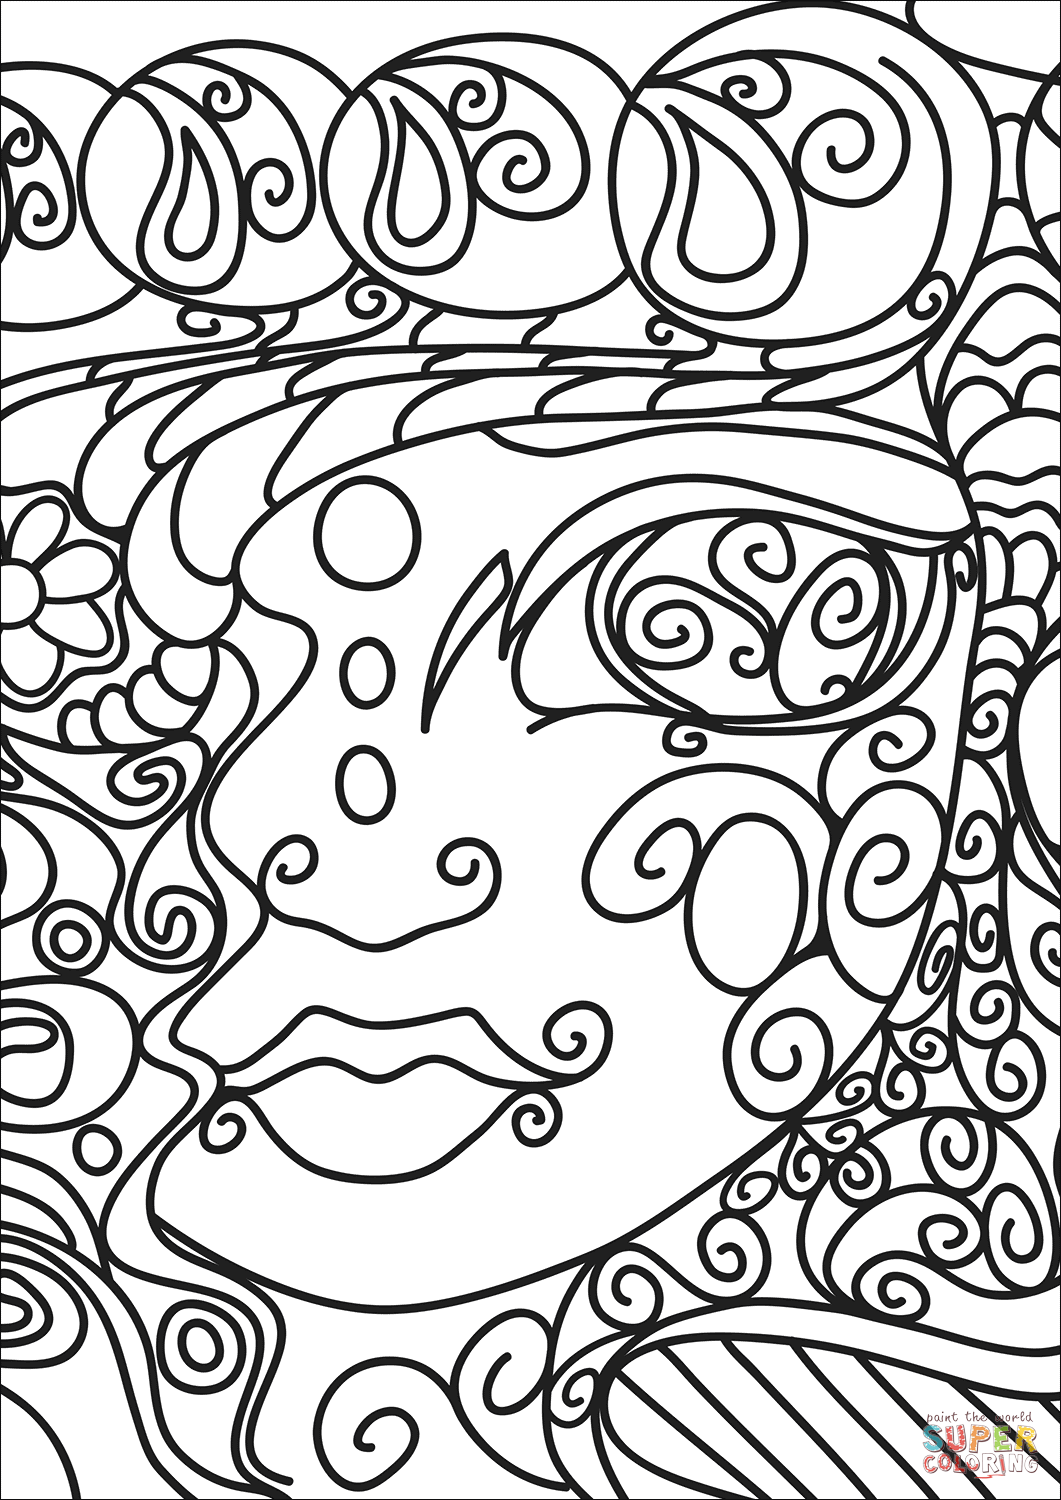 abstract coloring pages to print abstract coloring pages getcoloringpagescom print to abstract coloring pages